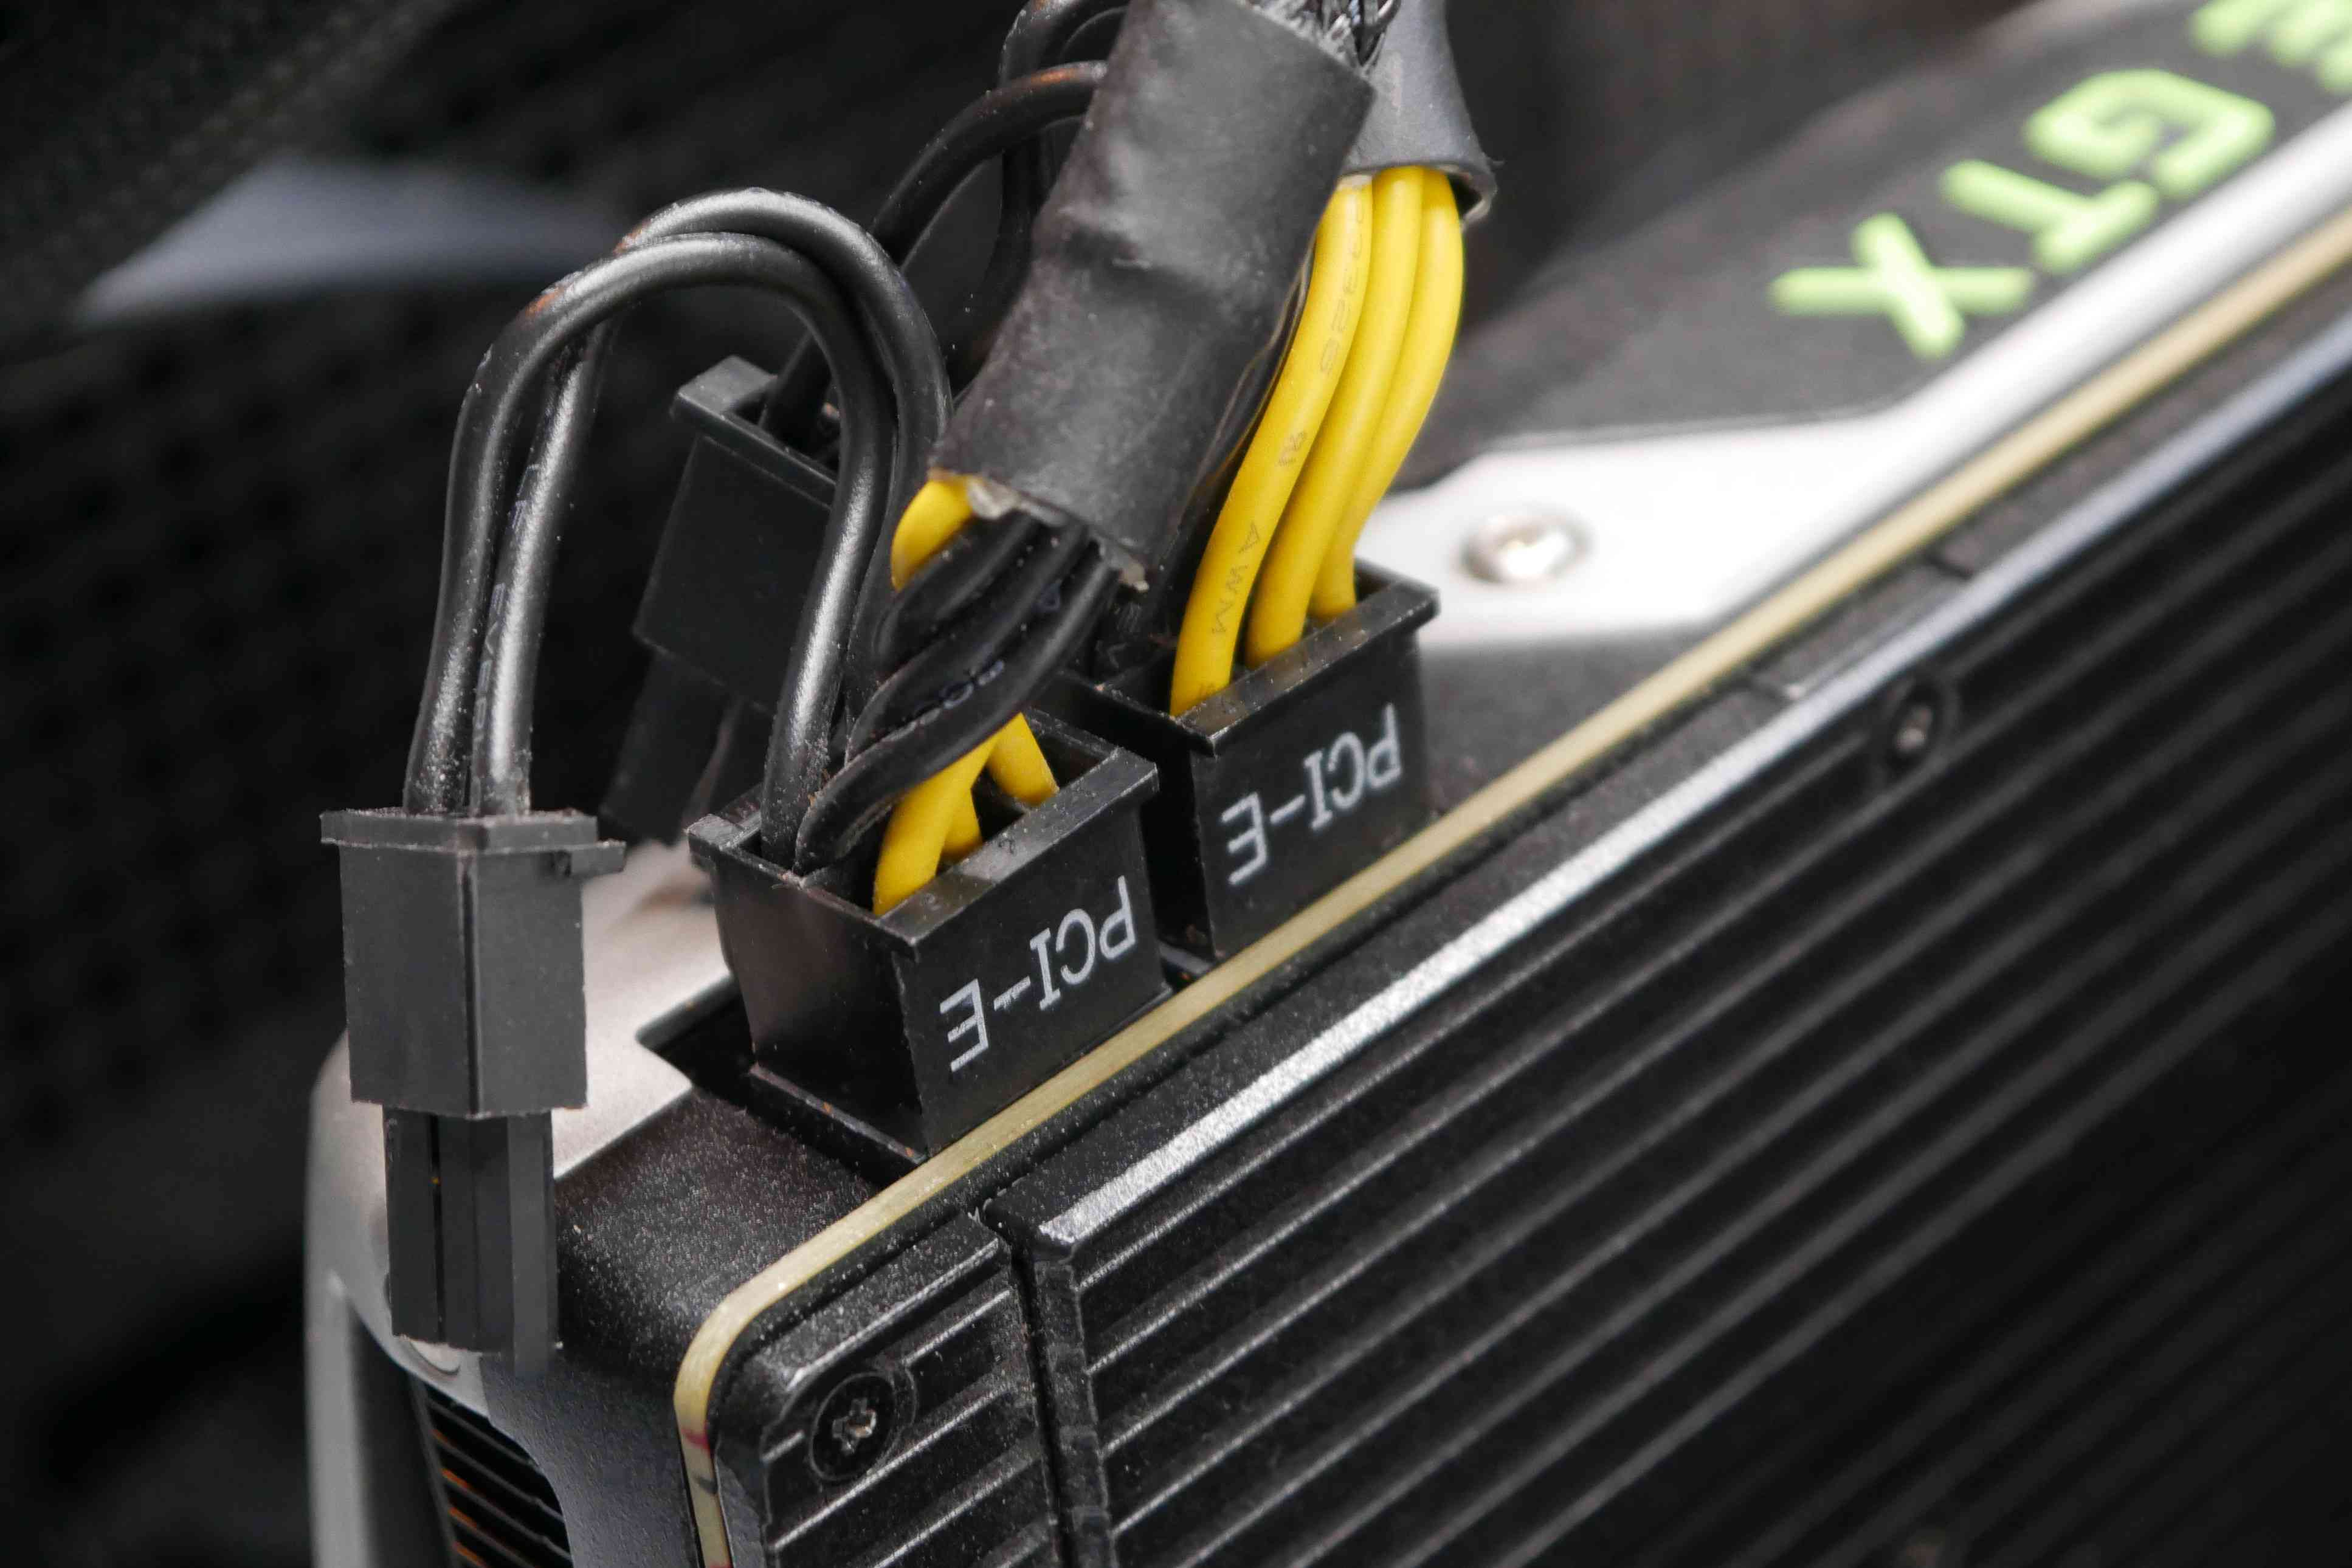 A photo of PCIe power connectors plugged in to a graphics card